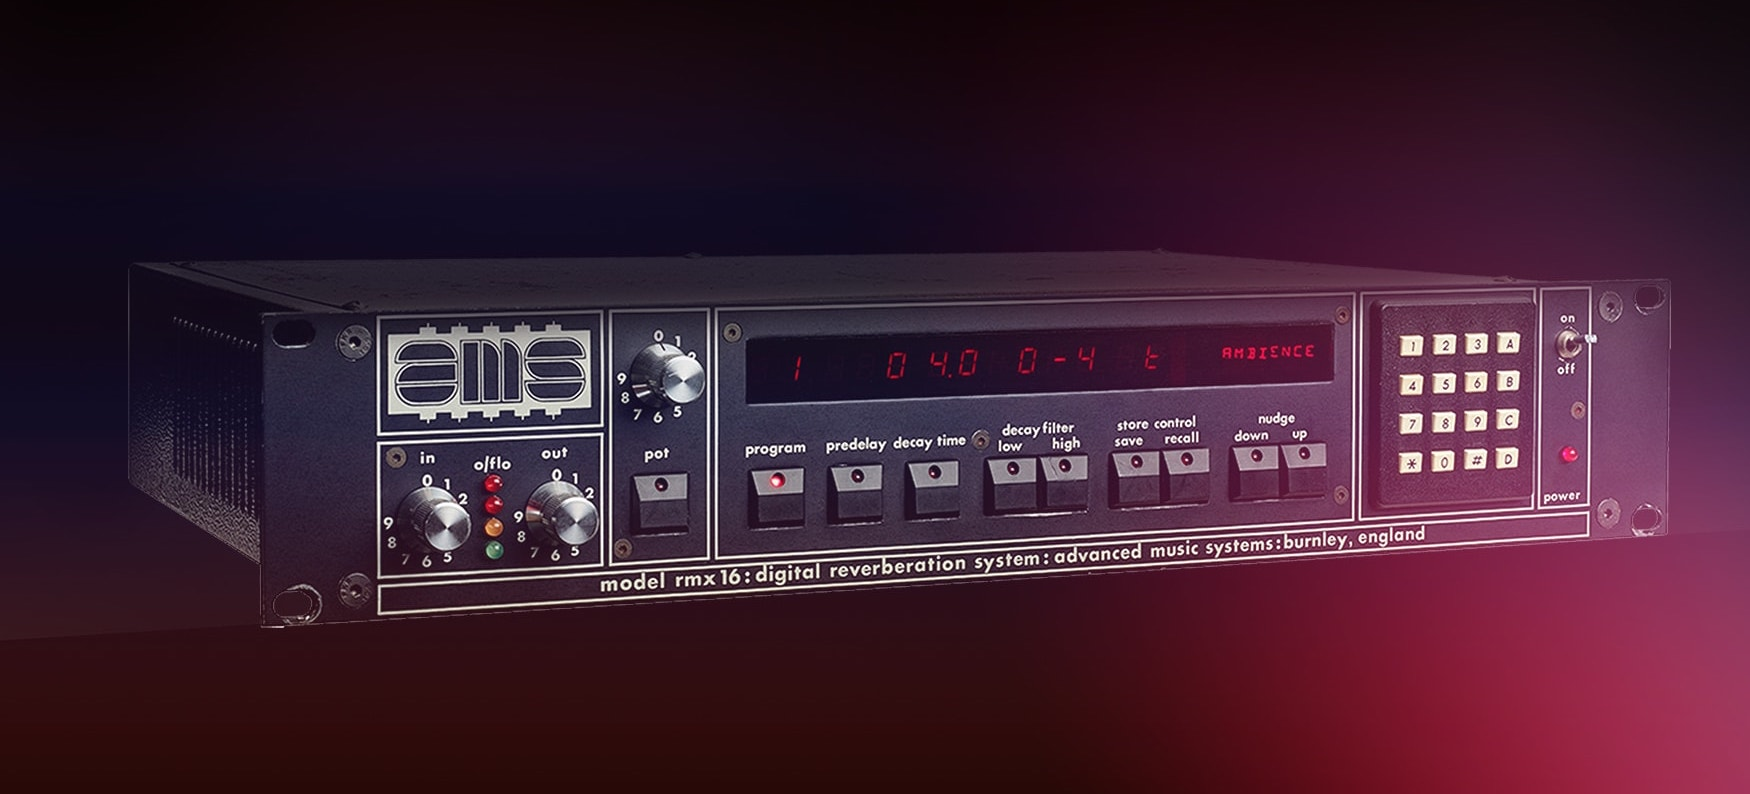 8 Reverb and Delay Plugins Based on Vintage Hardware